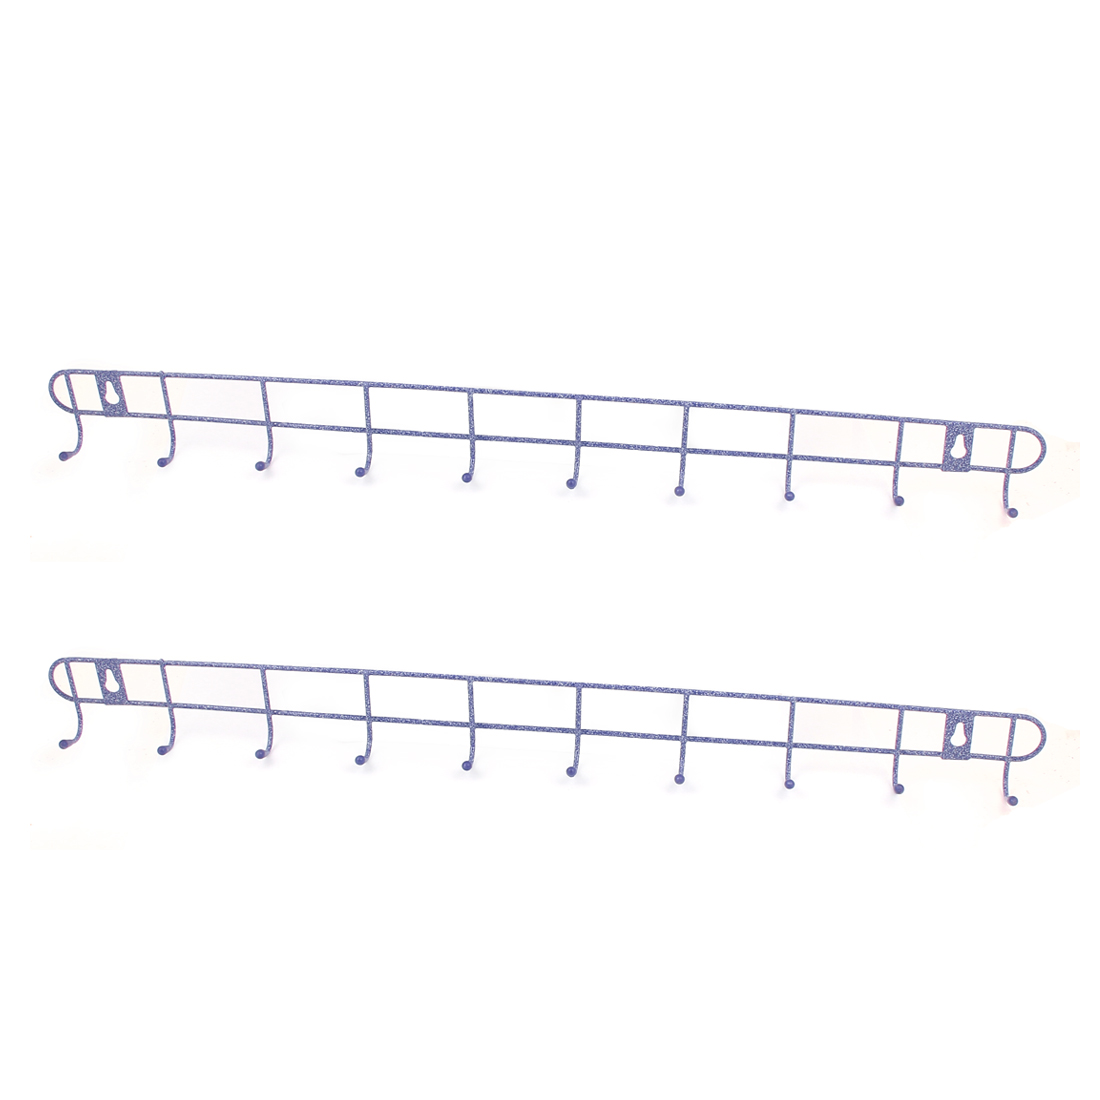 Metal 10 Hooks Bedroom Bathroom Kitchen Hat Coat Towels Wall Hanger Rack Holder Purple 2PCS